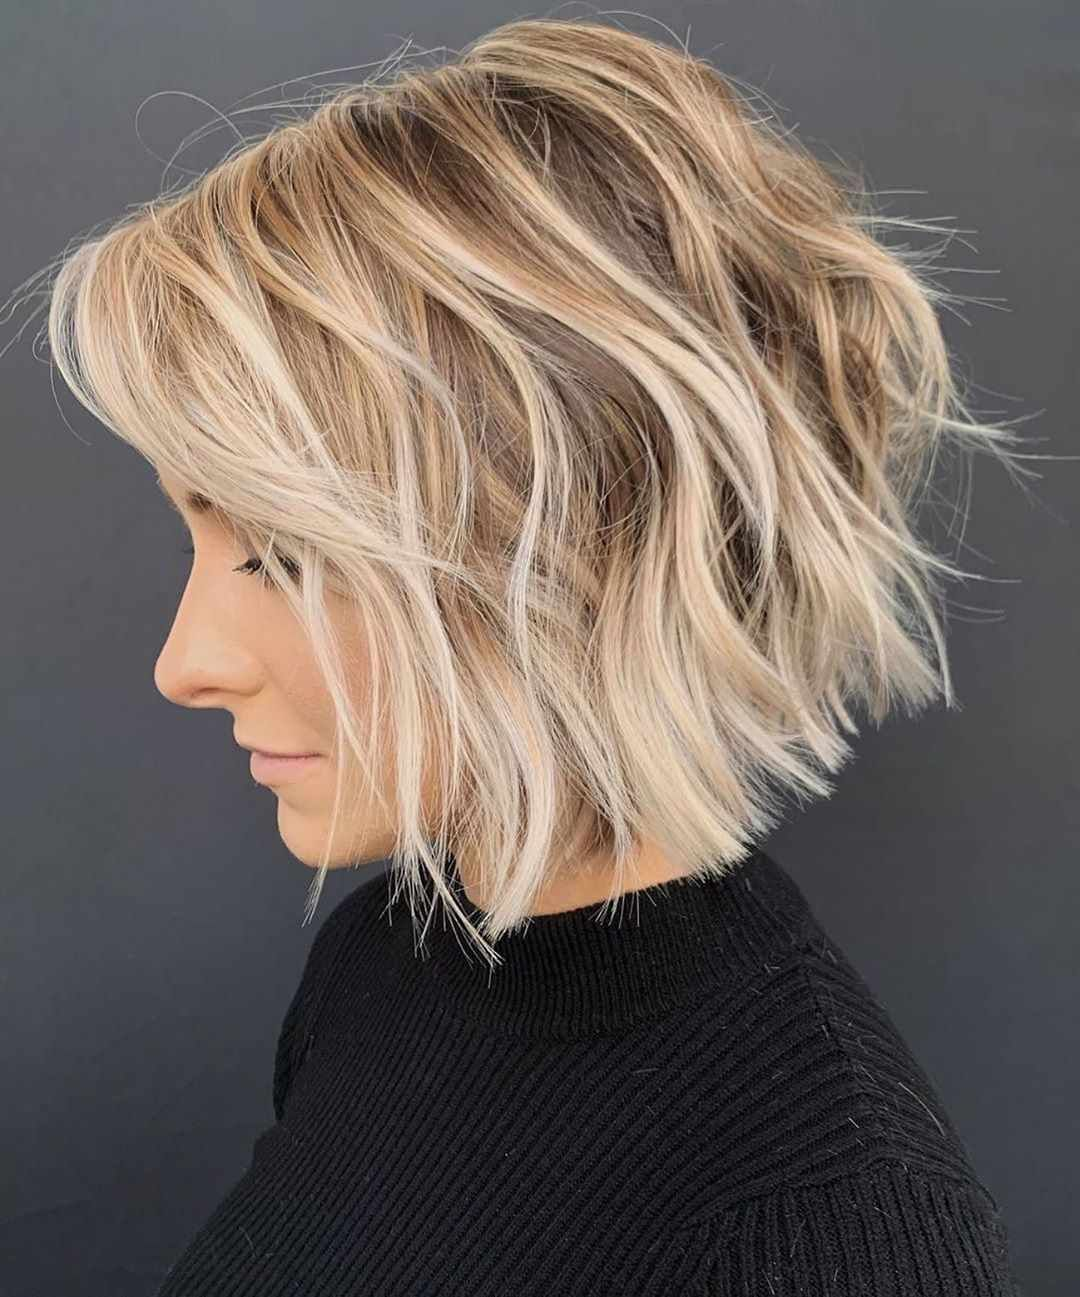 Latest Short Hairstyles For Winter 2020 In 2020 Textured Haircut Trending Haircuts Wavy Bob Haircuts